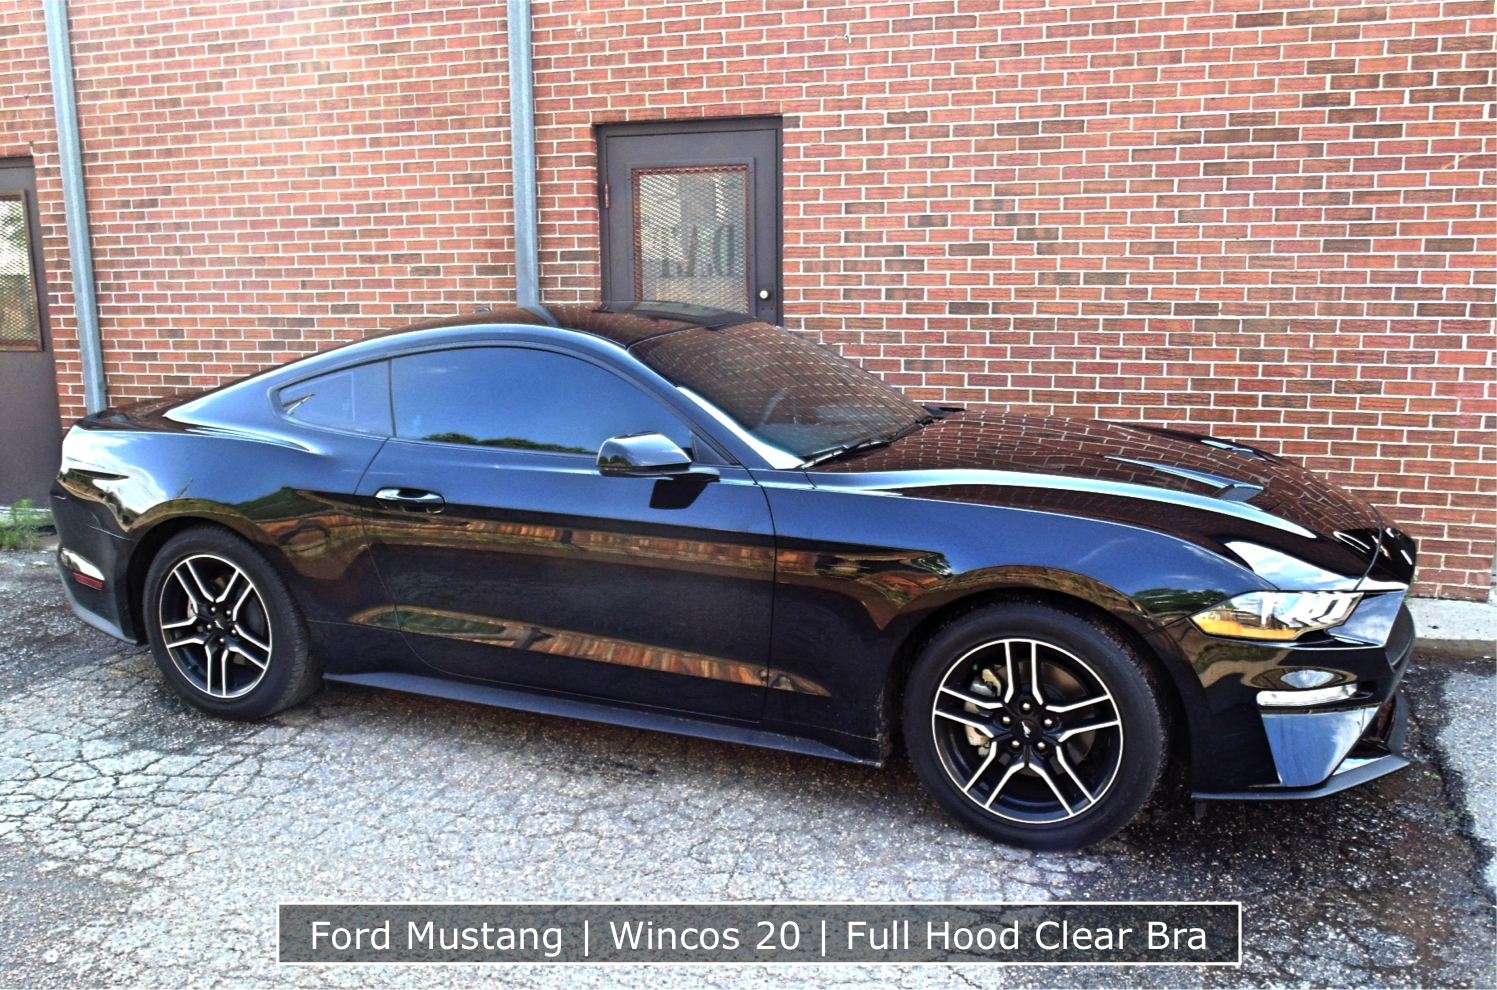 Mustang With Tint And Clear Bra